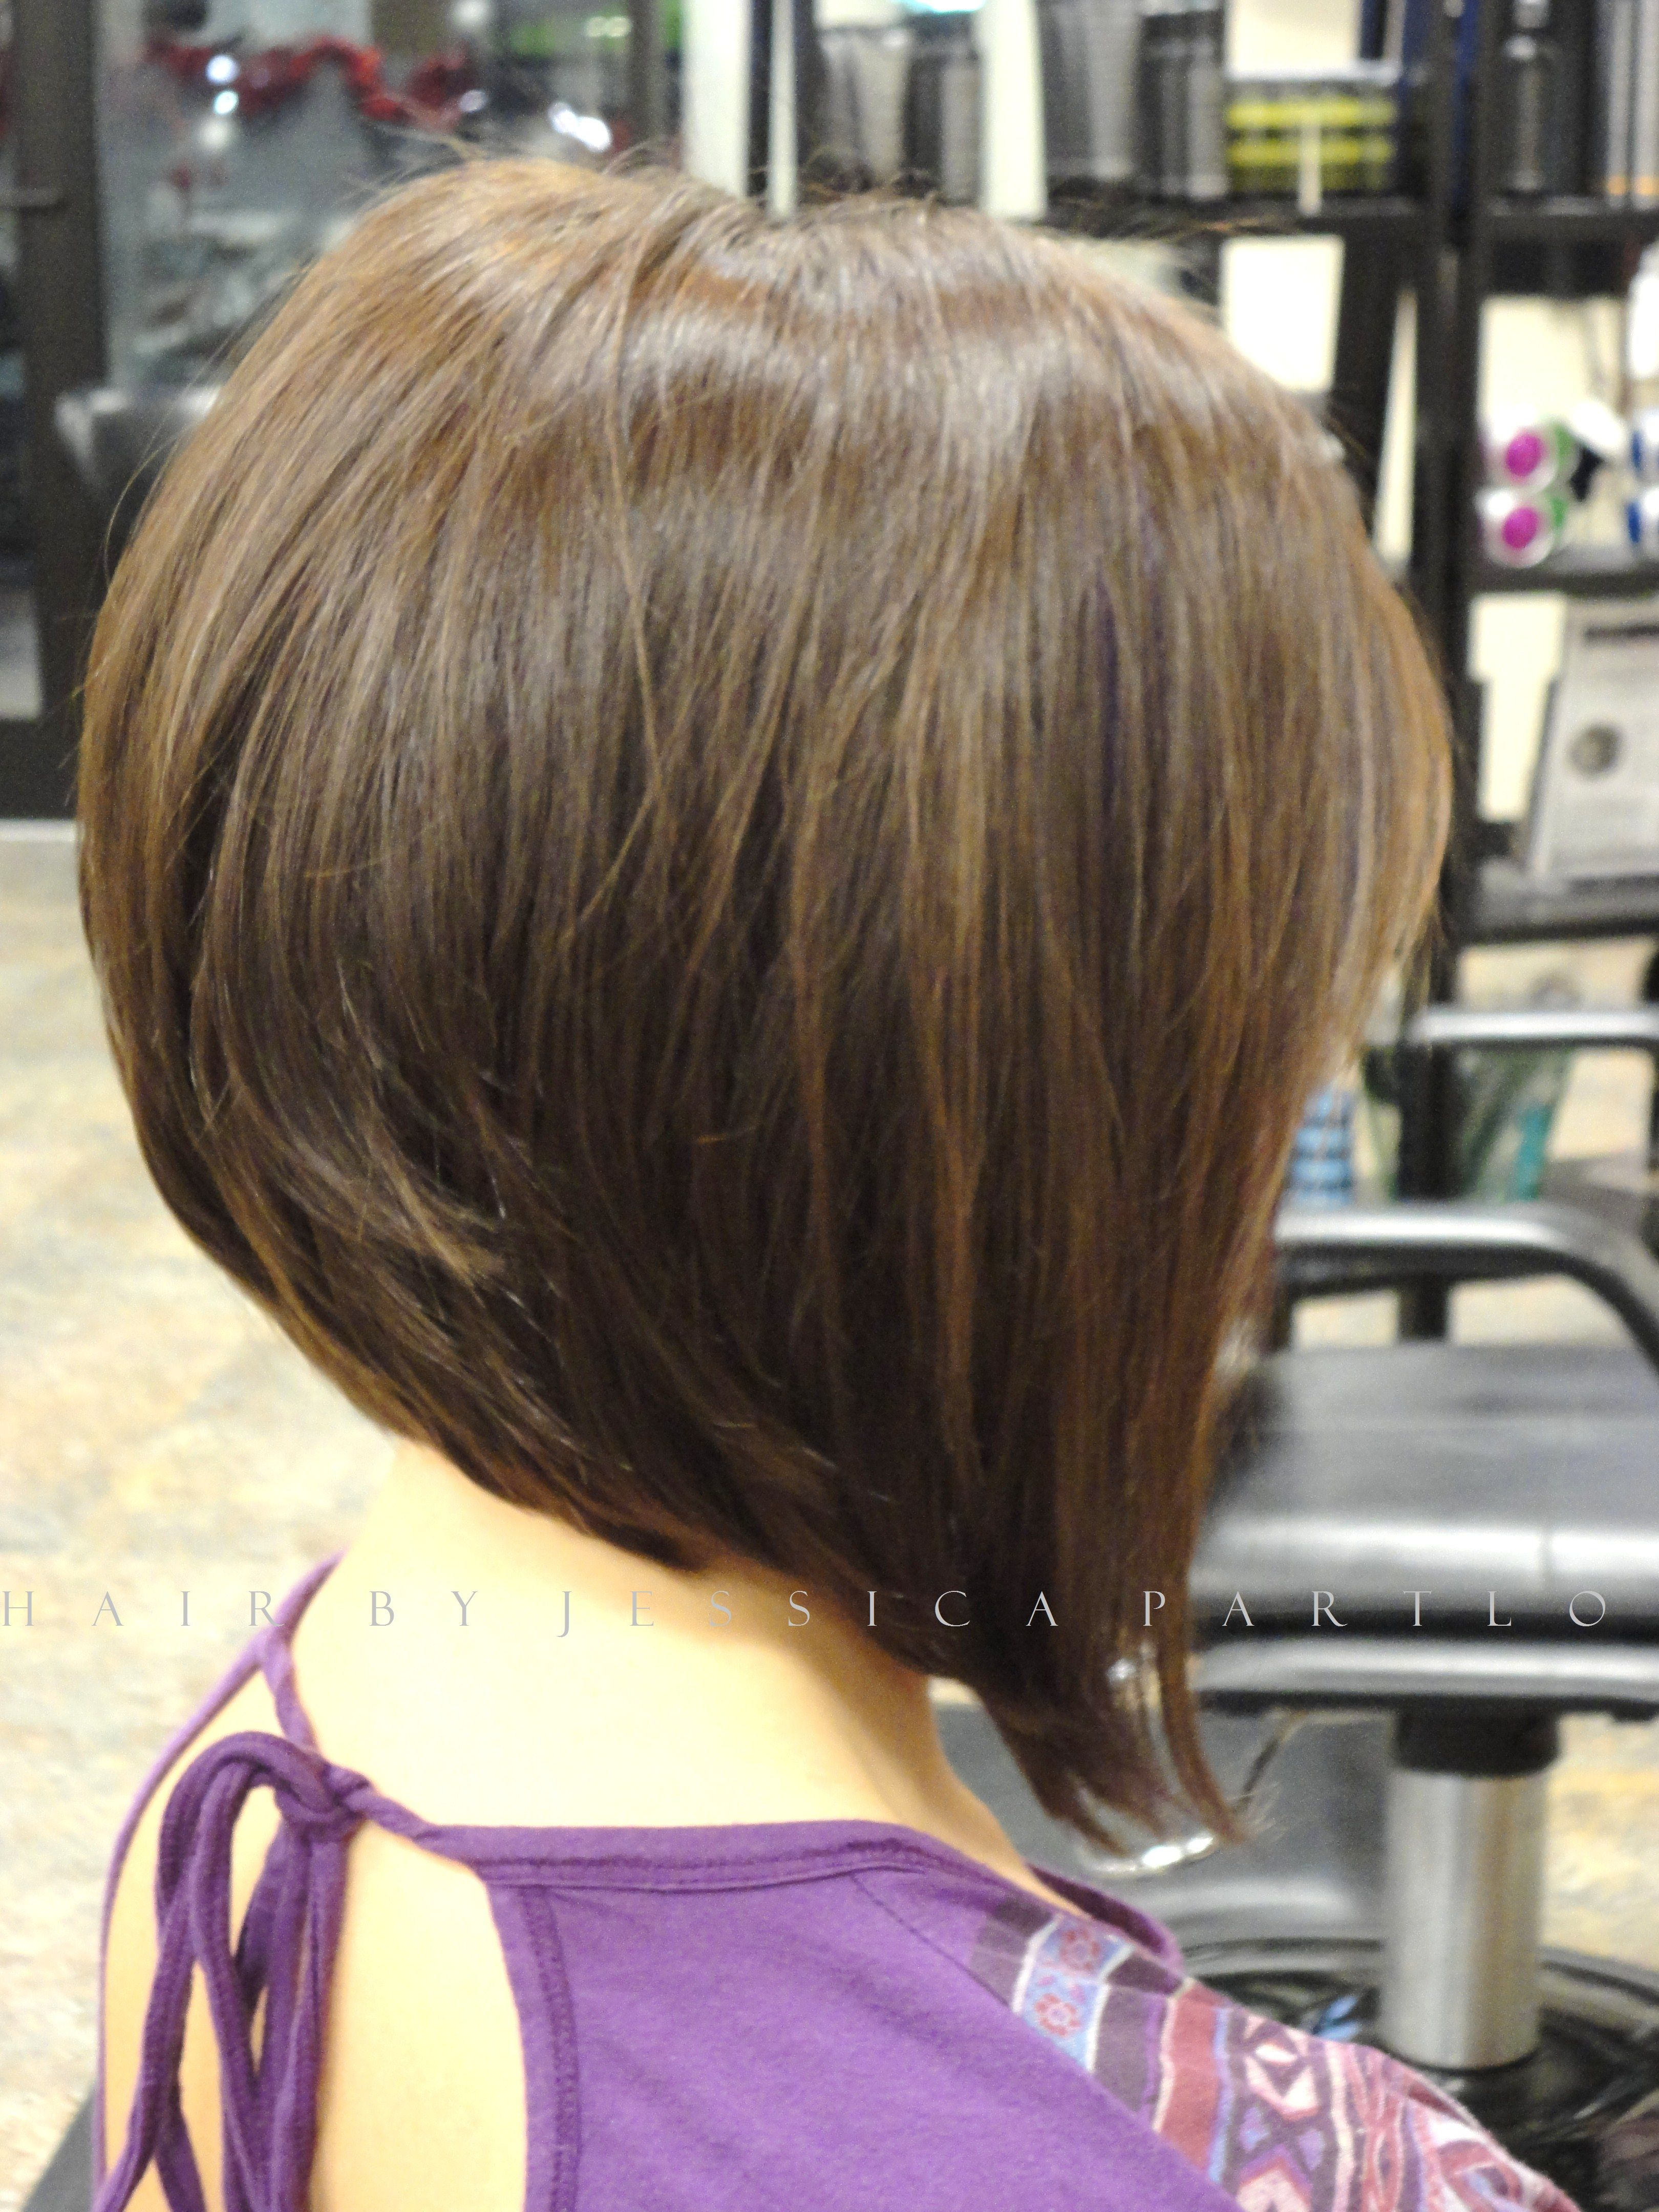 I need to get my hair cut again ium thinking about taking in this